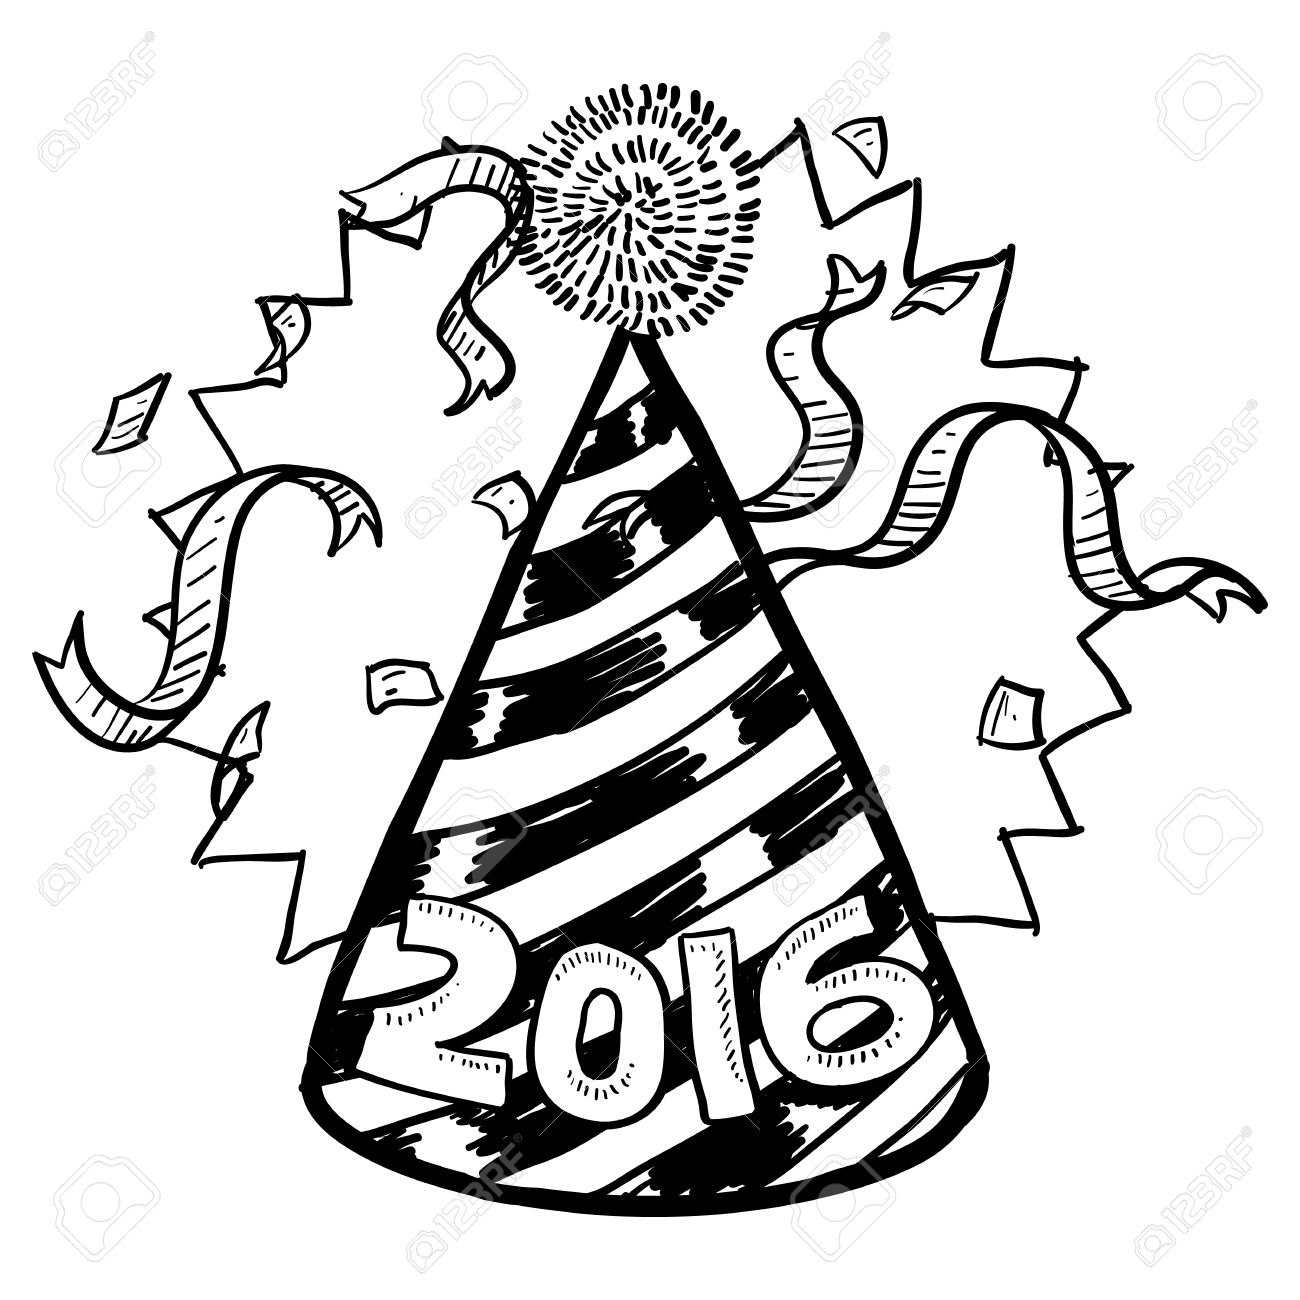 Party Hat Clipart Black And White Party Hat Clipart Black And White Free Download Best Party Hat